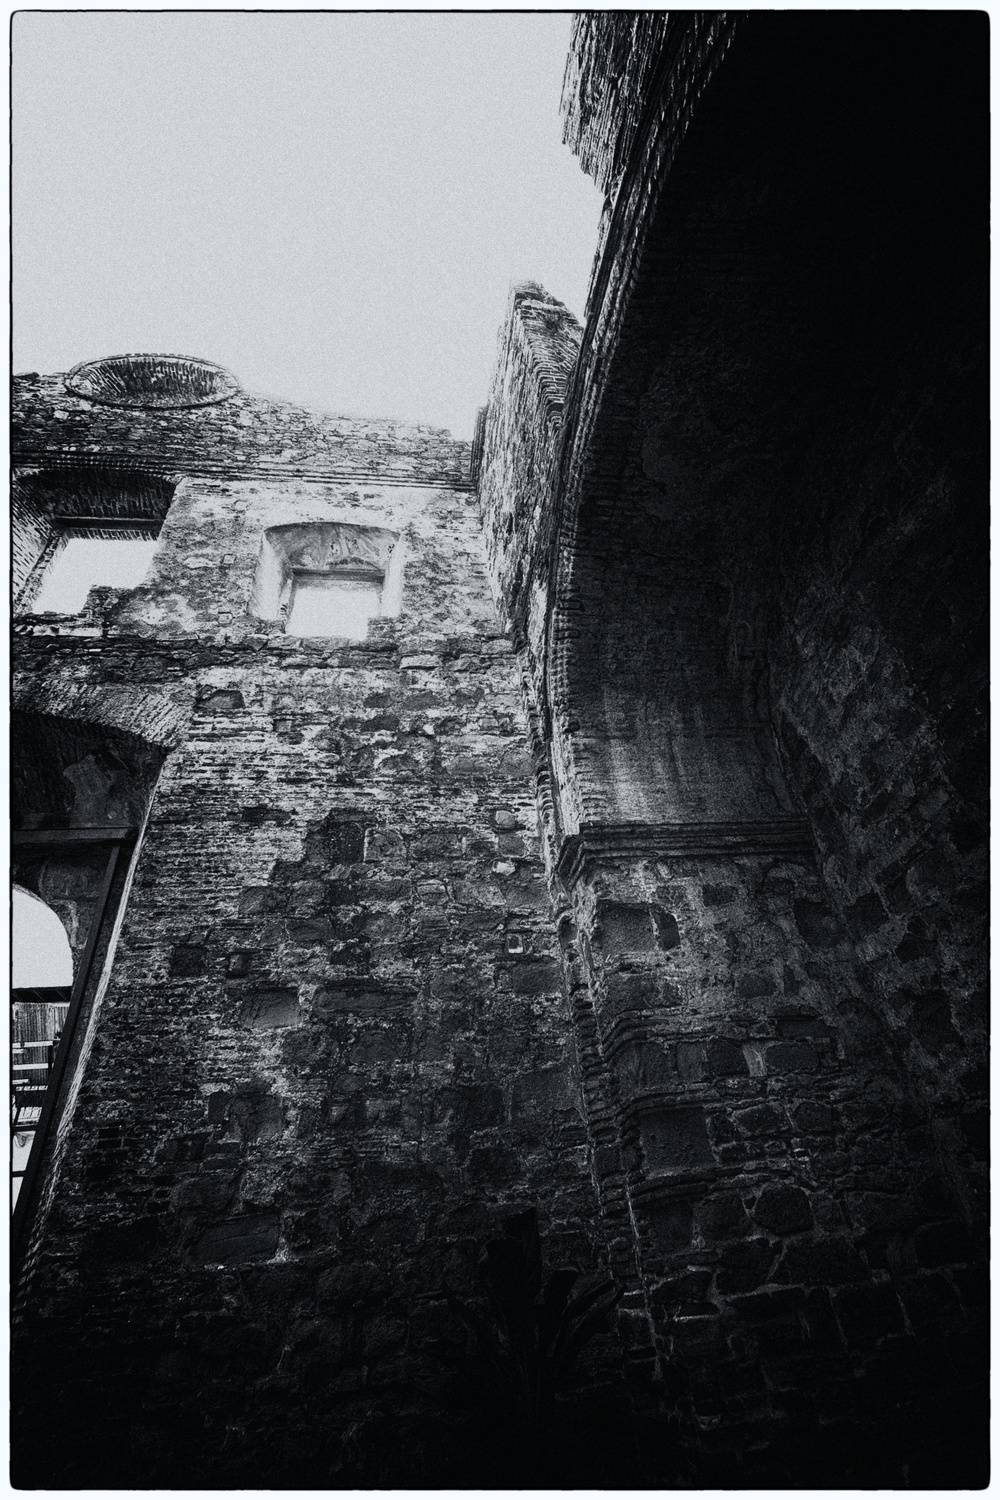 2012-12-31 at 10-06-39 Ancient, Arch, Architecture, Black & White, Concrete, Height, Stone, Tower.jpg